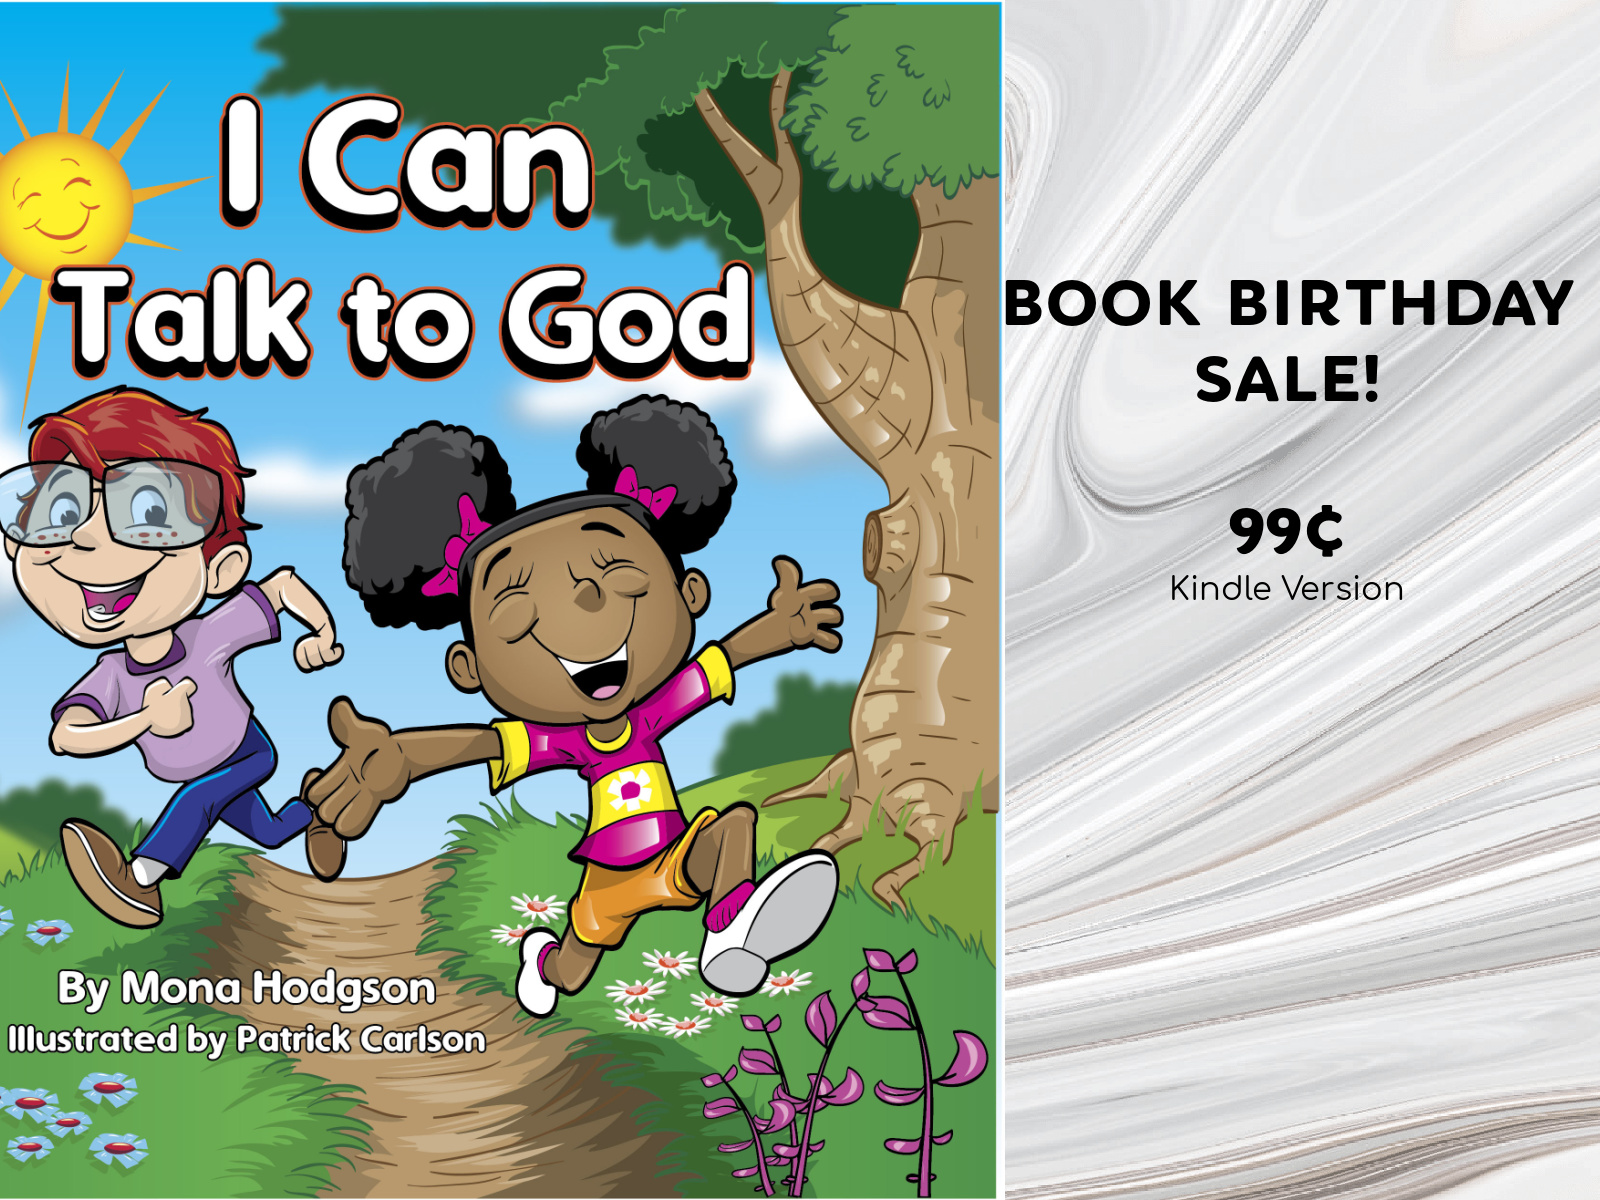 Book Birthday Sale and Free Resources www.monahodgson.com